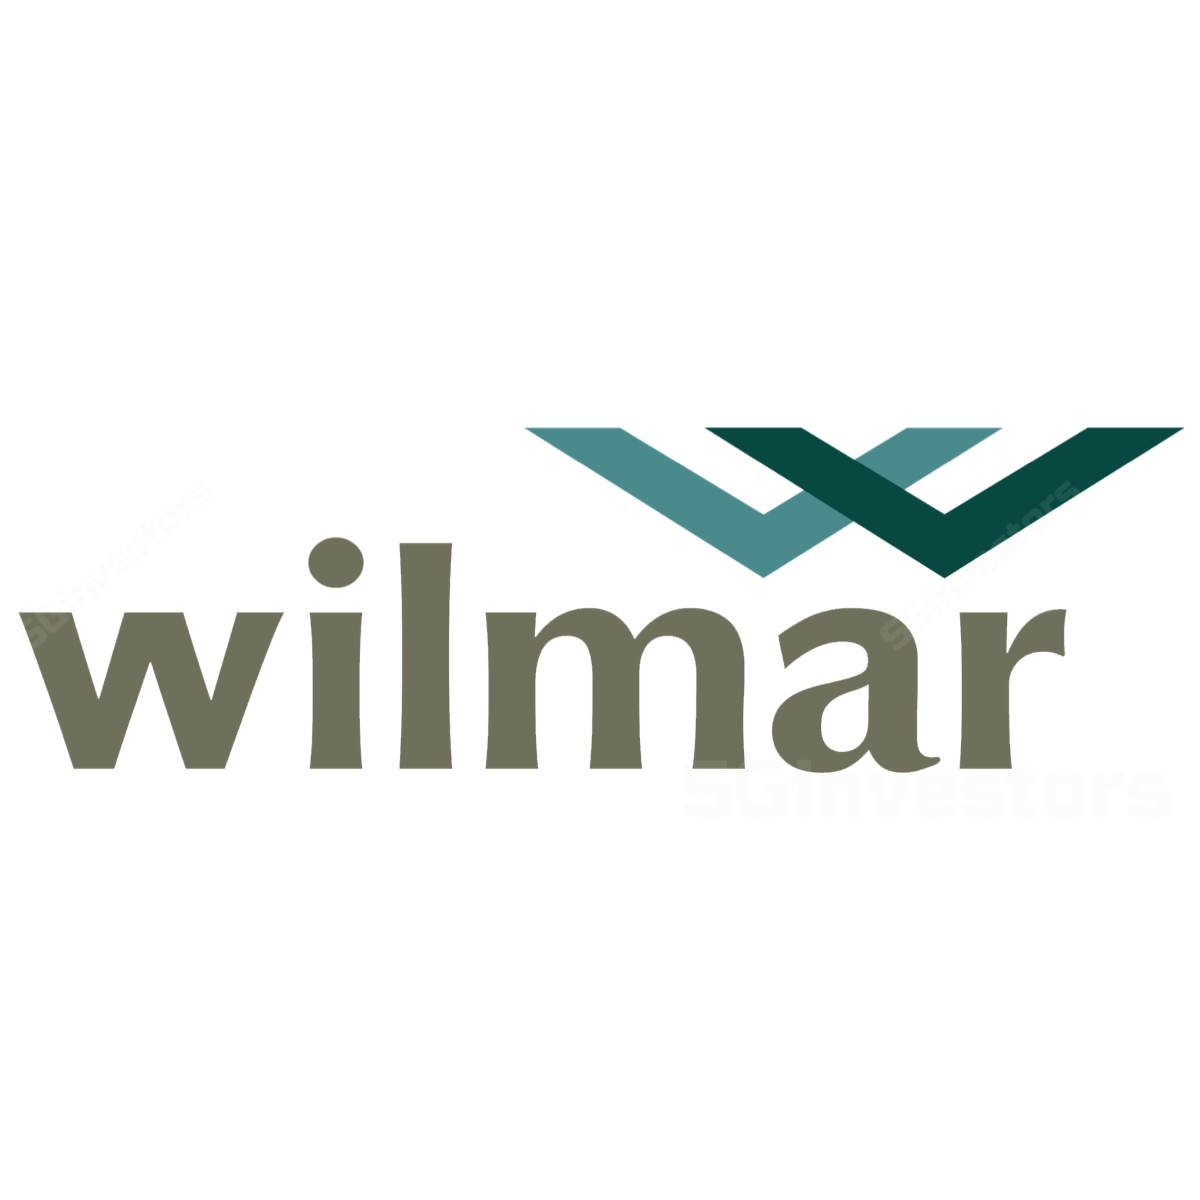 Wilmar - RHB Invest 2018-04-06: China Imposes 25% Tariff On US Soybeans